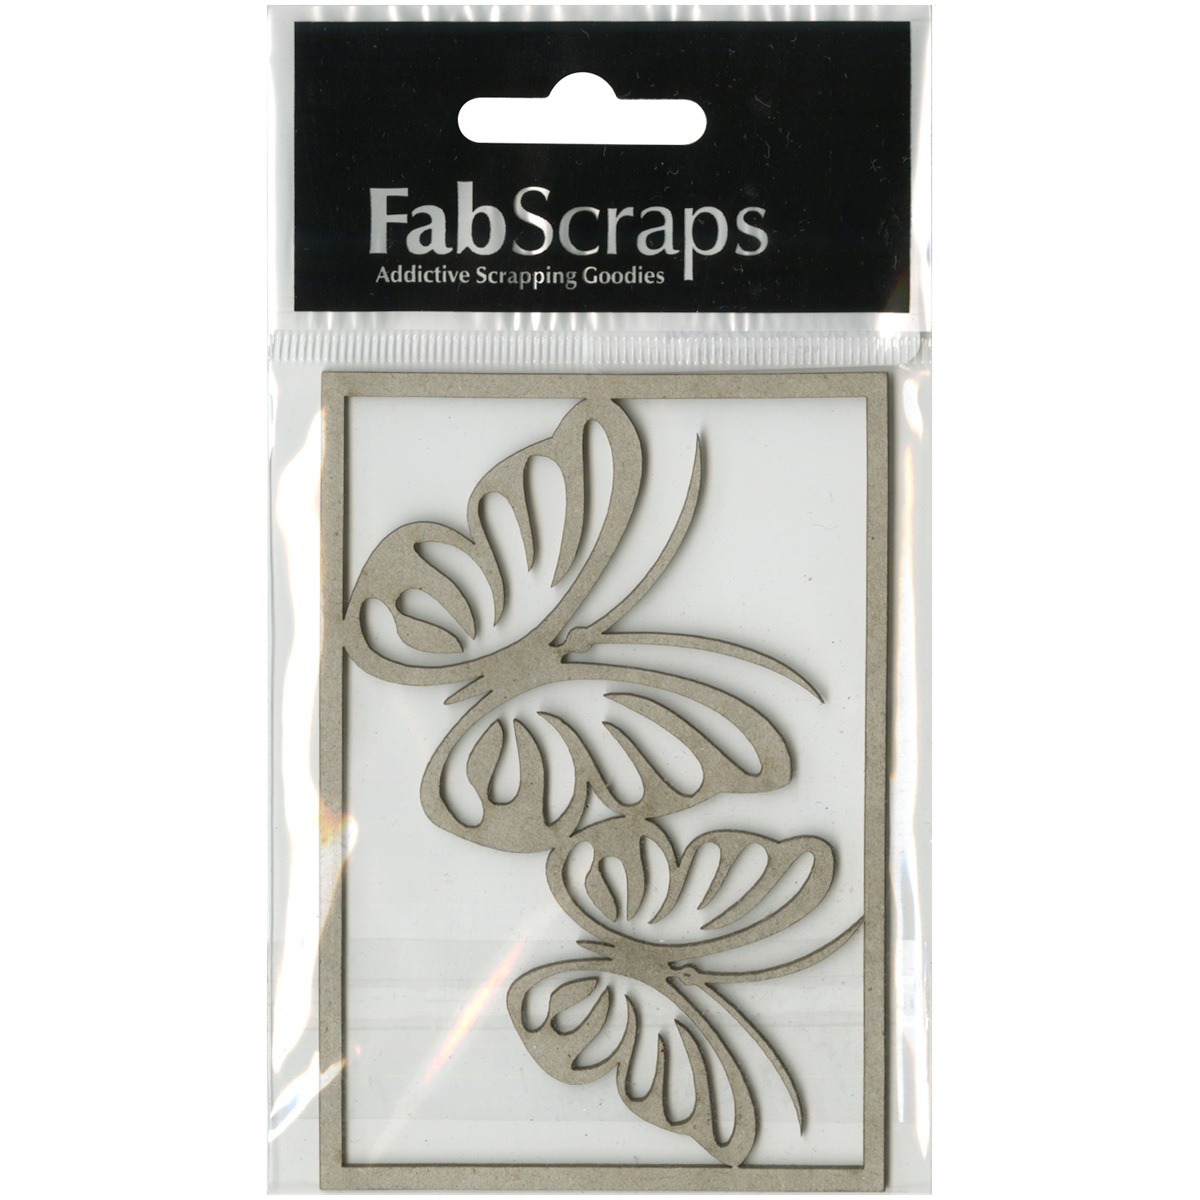 "FabScraps Kaleidoscope Die-Cut Gray Chipboard Shape-Butterflies, Up To 2""X2"" 2/Pkg"